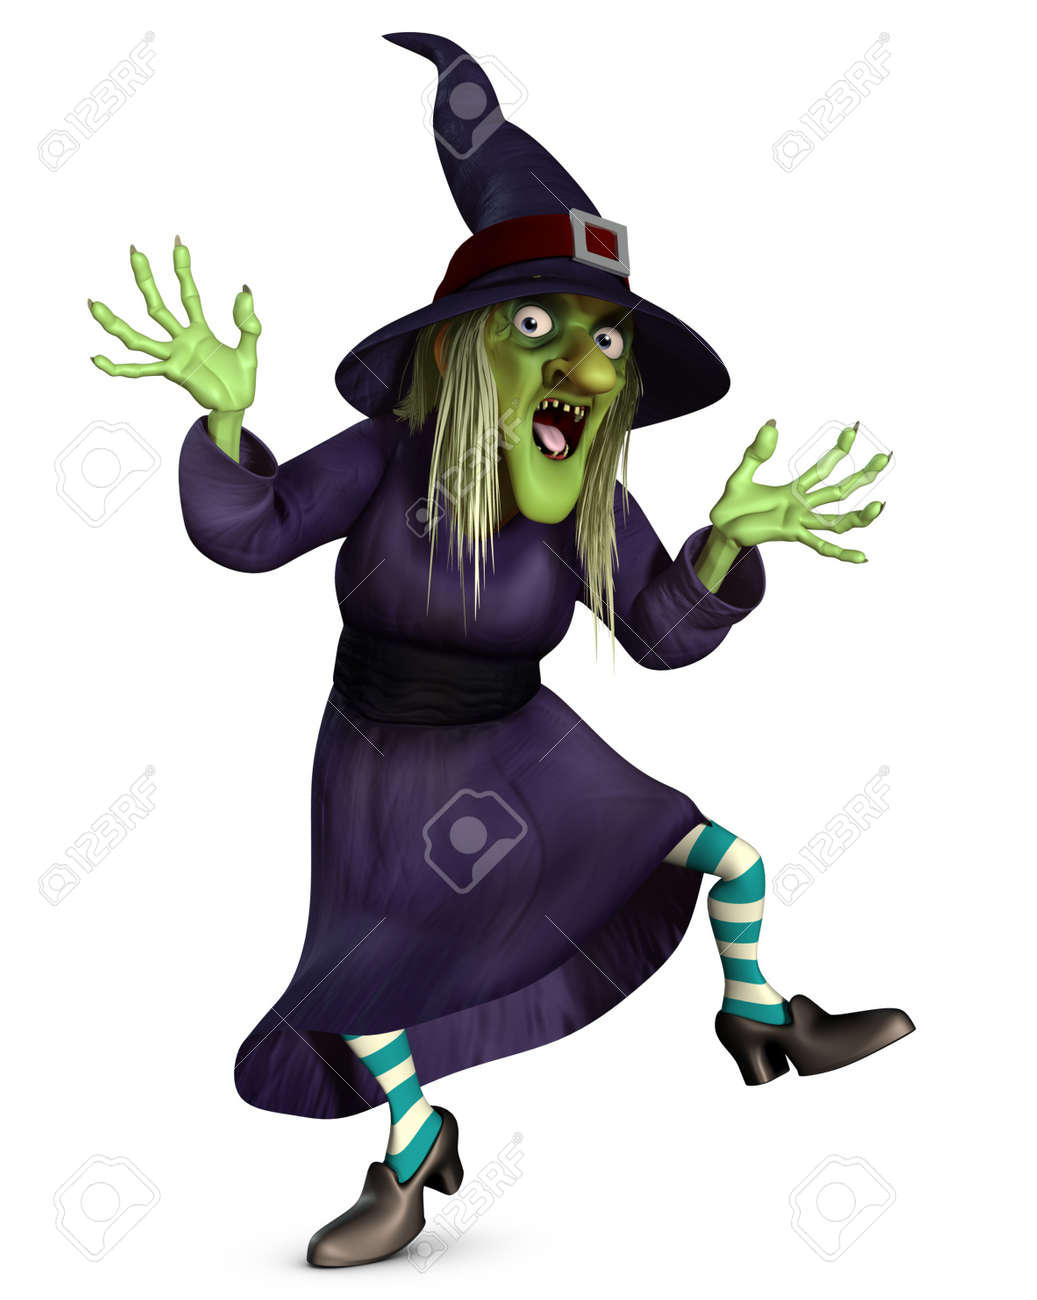 3d Cartoon Halloween Crazy Witch Stock Photo Picture And Royalty Free Image Image 15626239 Watch cartoon online free in hd. 3d cartoon halloween crazy witch